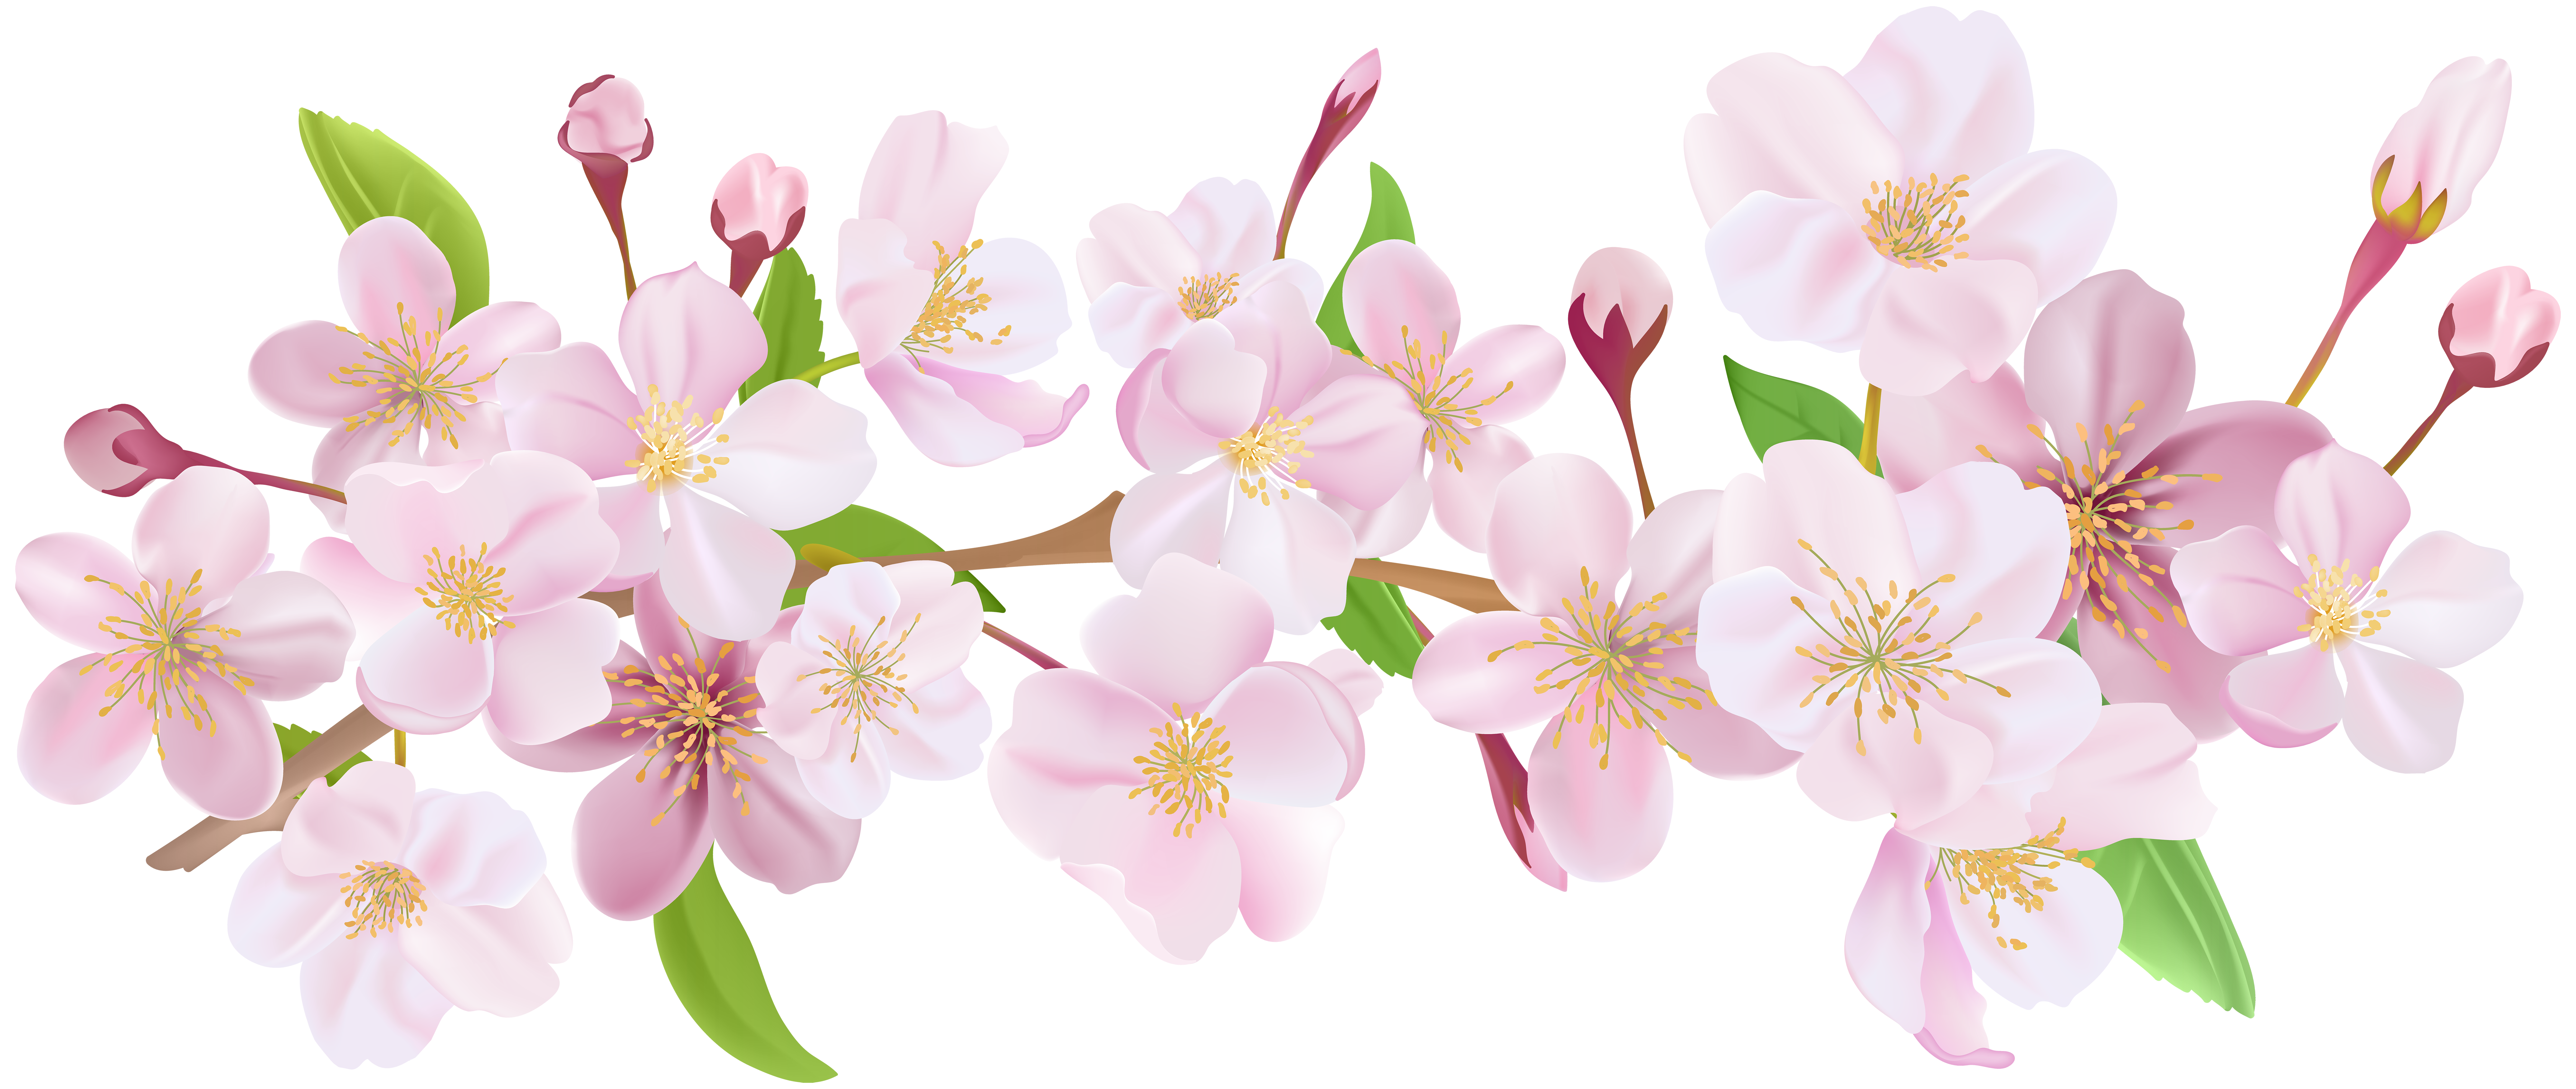 Cherry blossom clip art clipart images gallery for free download.